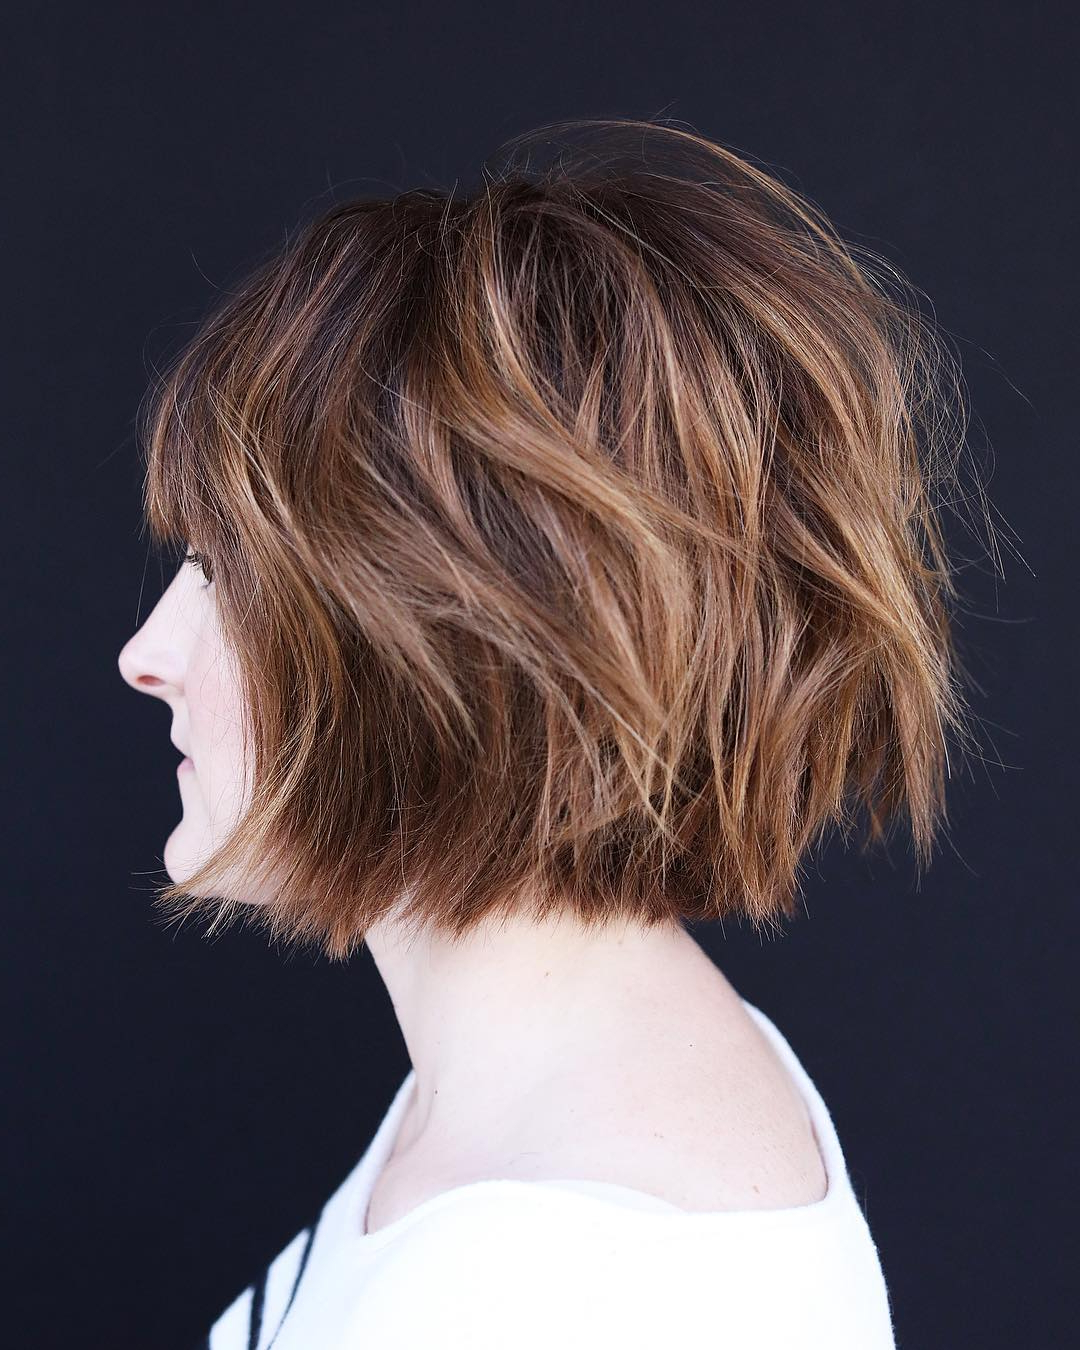 40 Modern Shag Haircuts For Women To Make A Splash In Well Liked Bob Shag Haircuts With Flipped Ends (View 5 of 20)